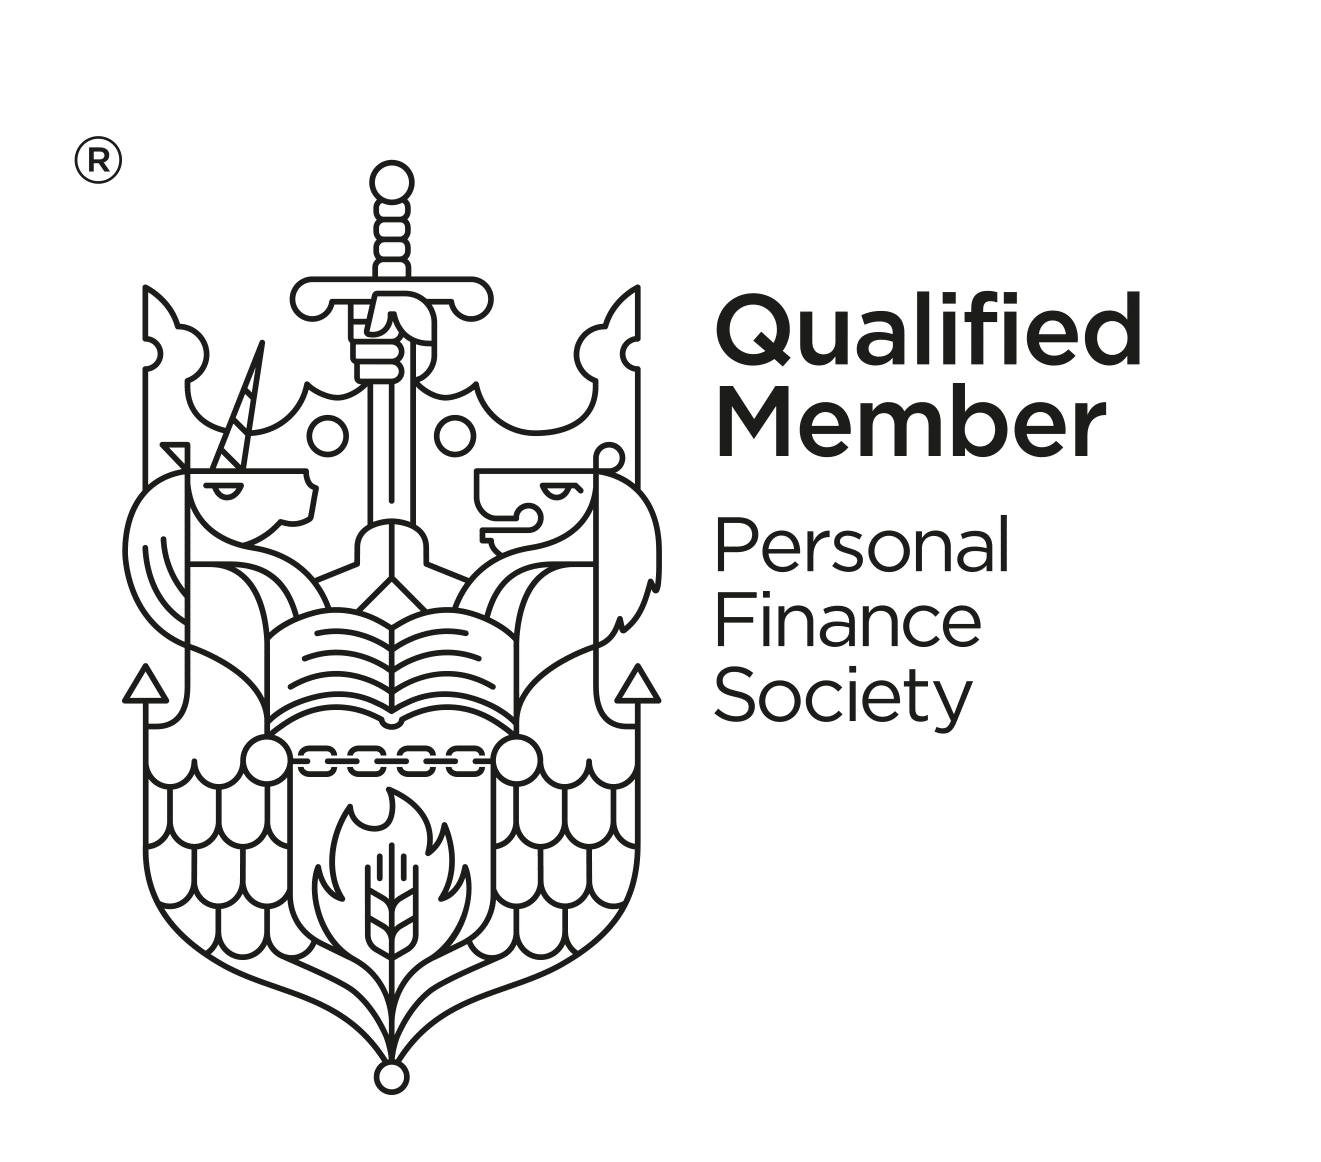 Qualified Member of The Personal Financial Society